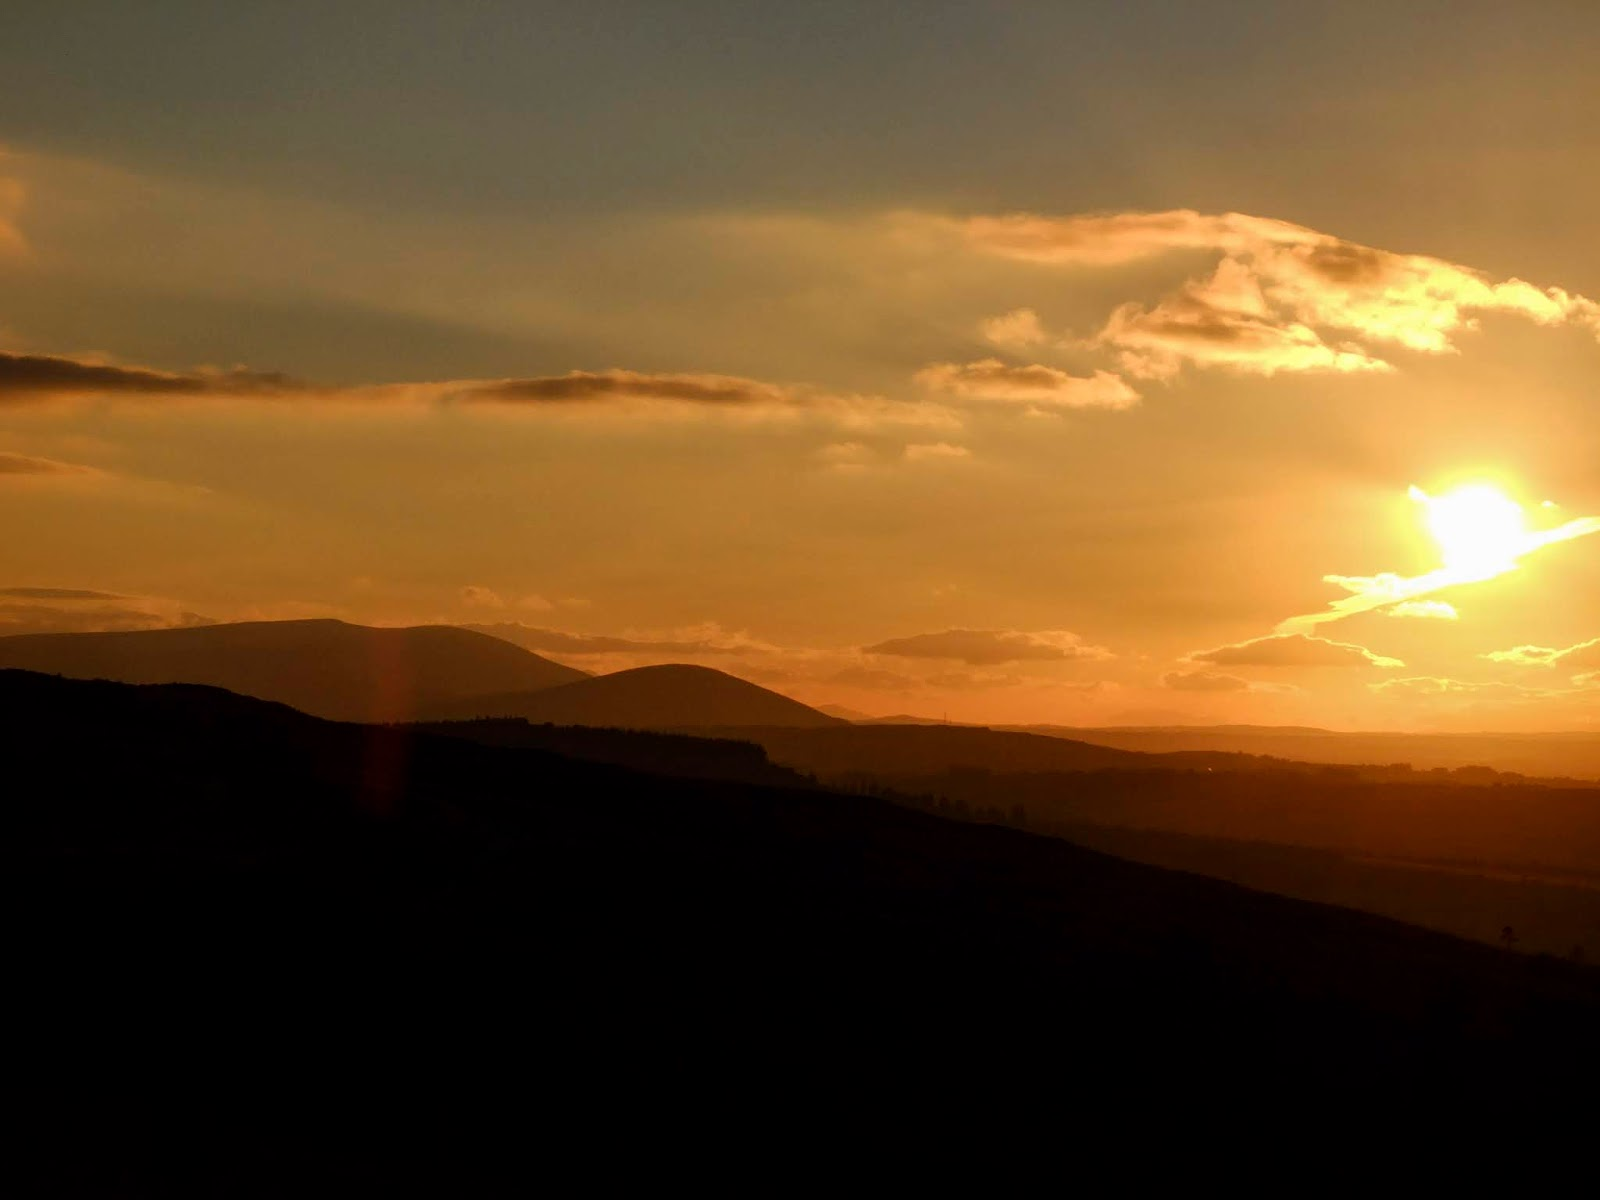 Sunset mountain views from the Boggeragh Mountains, Co.Cork.